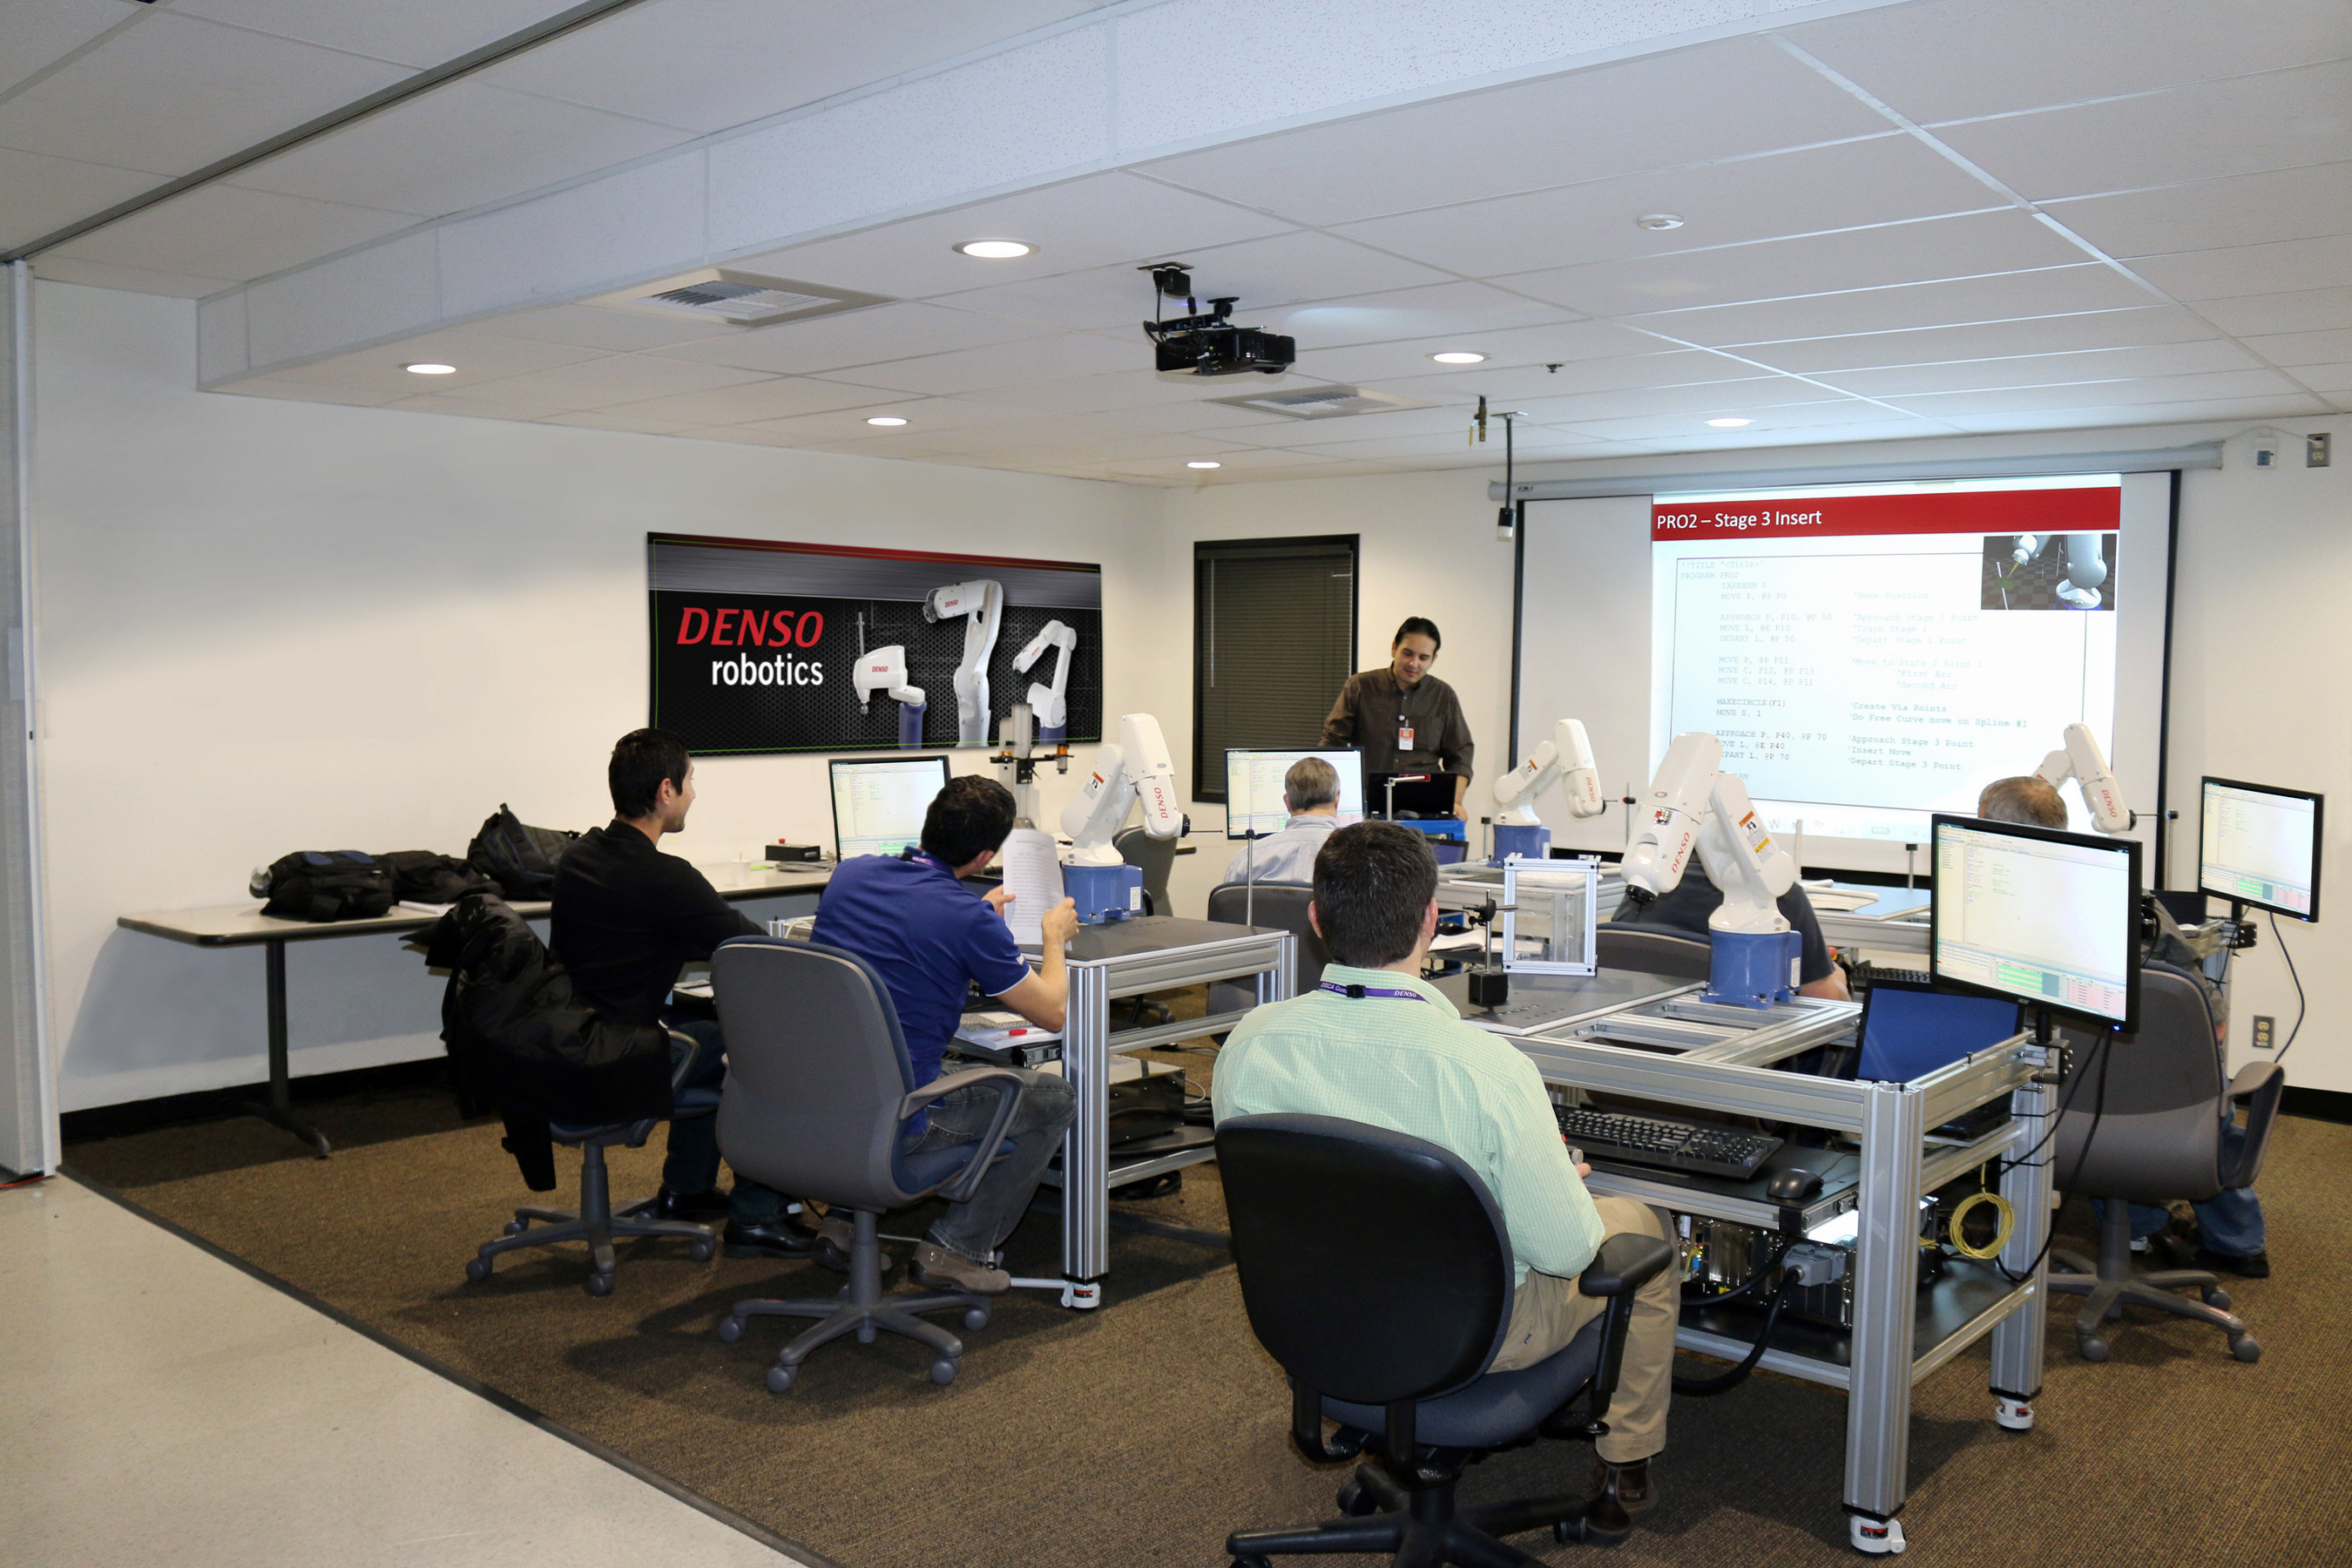 DENSO Robotics Opens New Training Center in U.S. Midwest